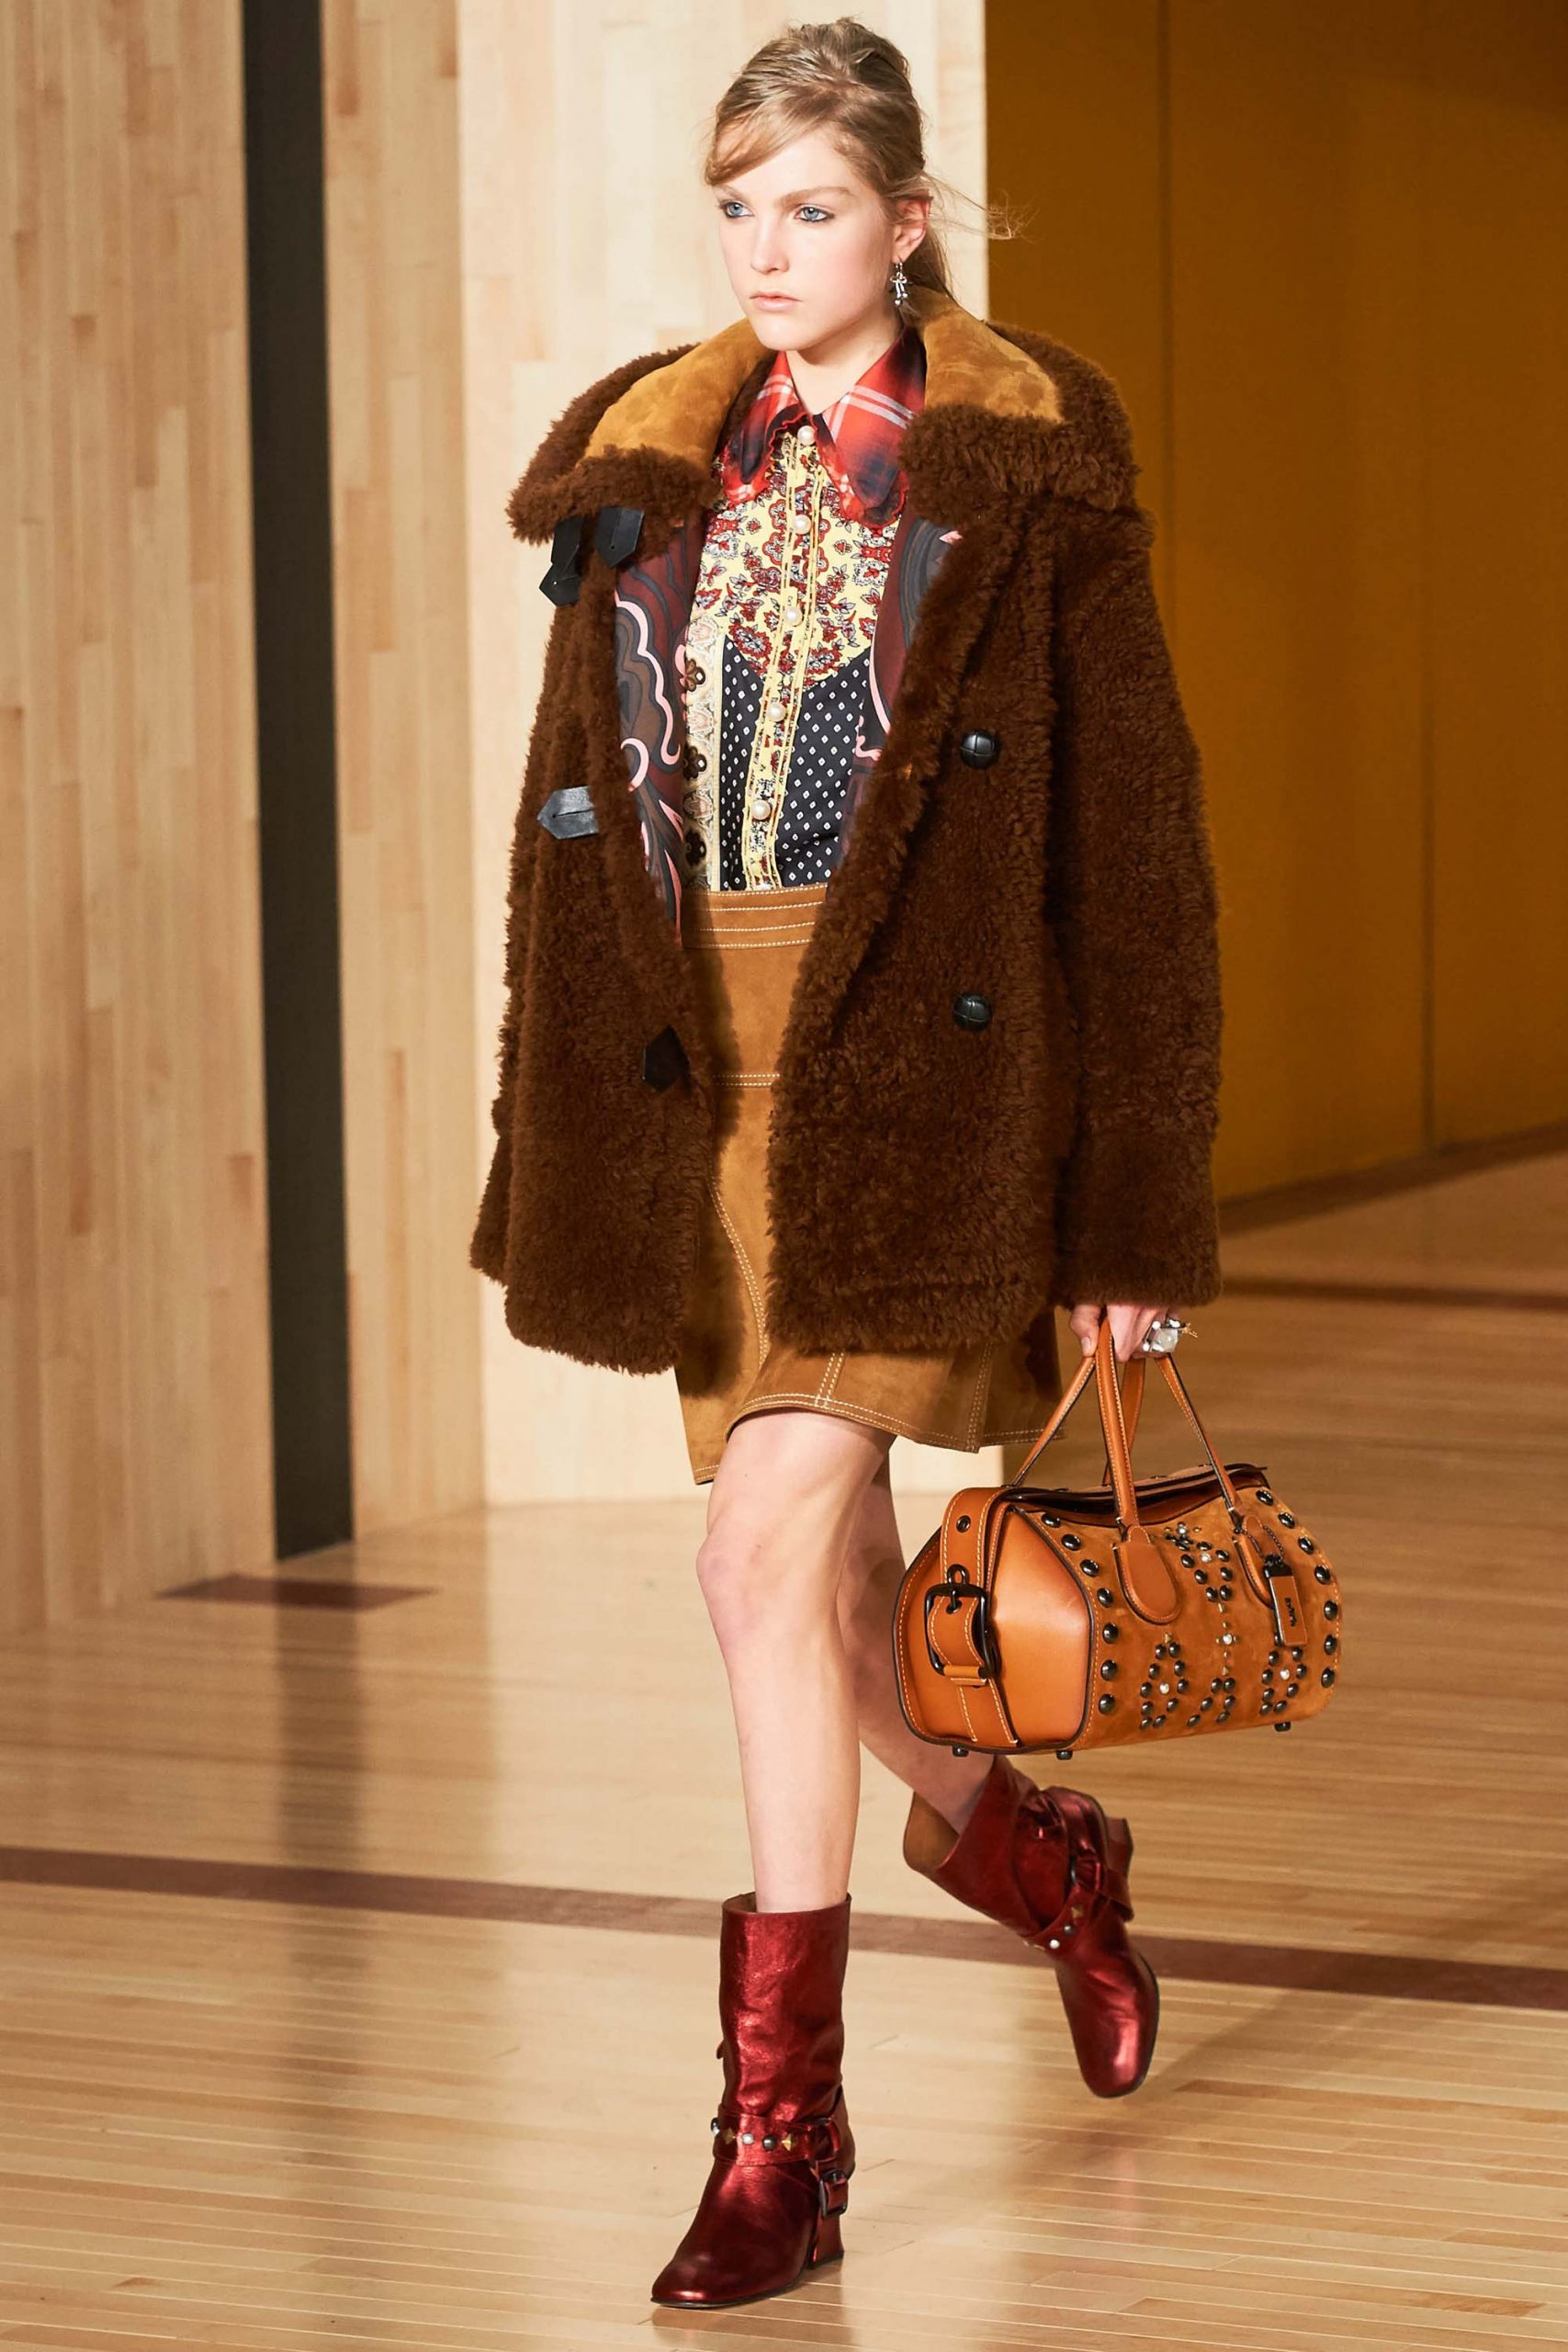 Fall Fashion Report: What's In and What's Out